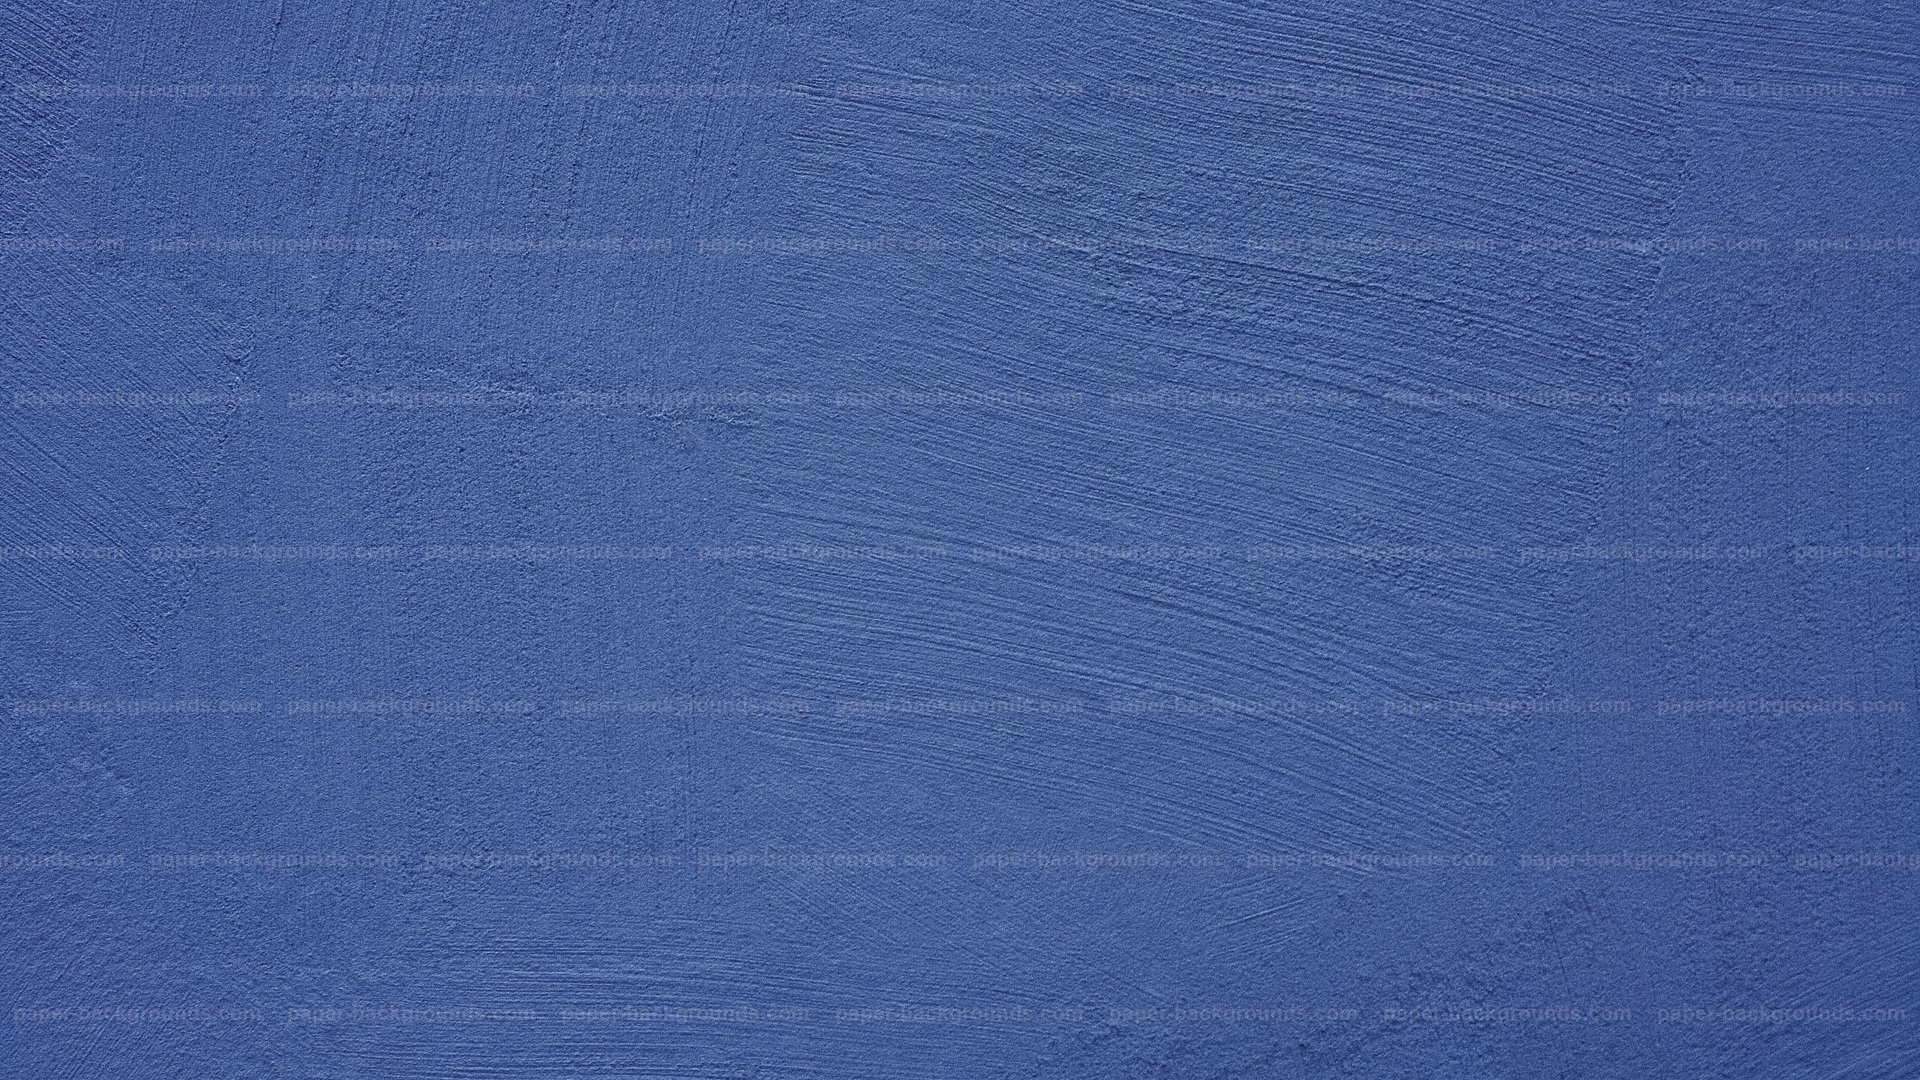 Blue Painted Concrete Wall Texture HD